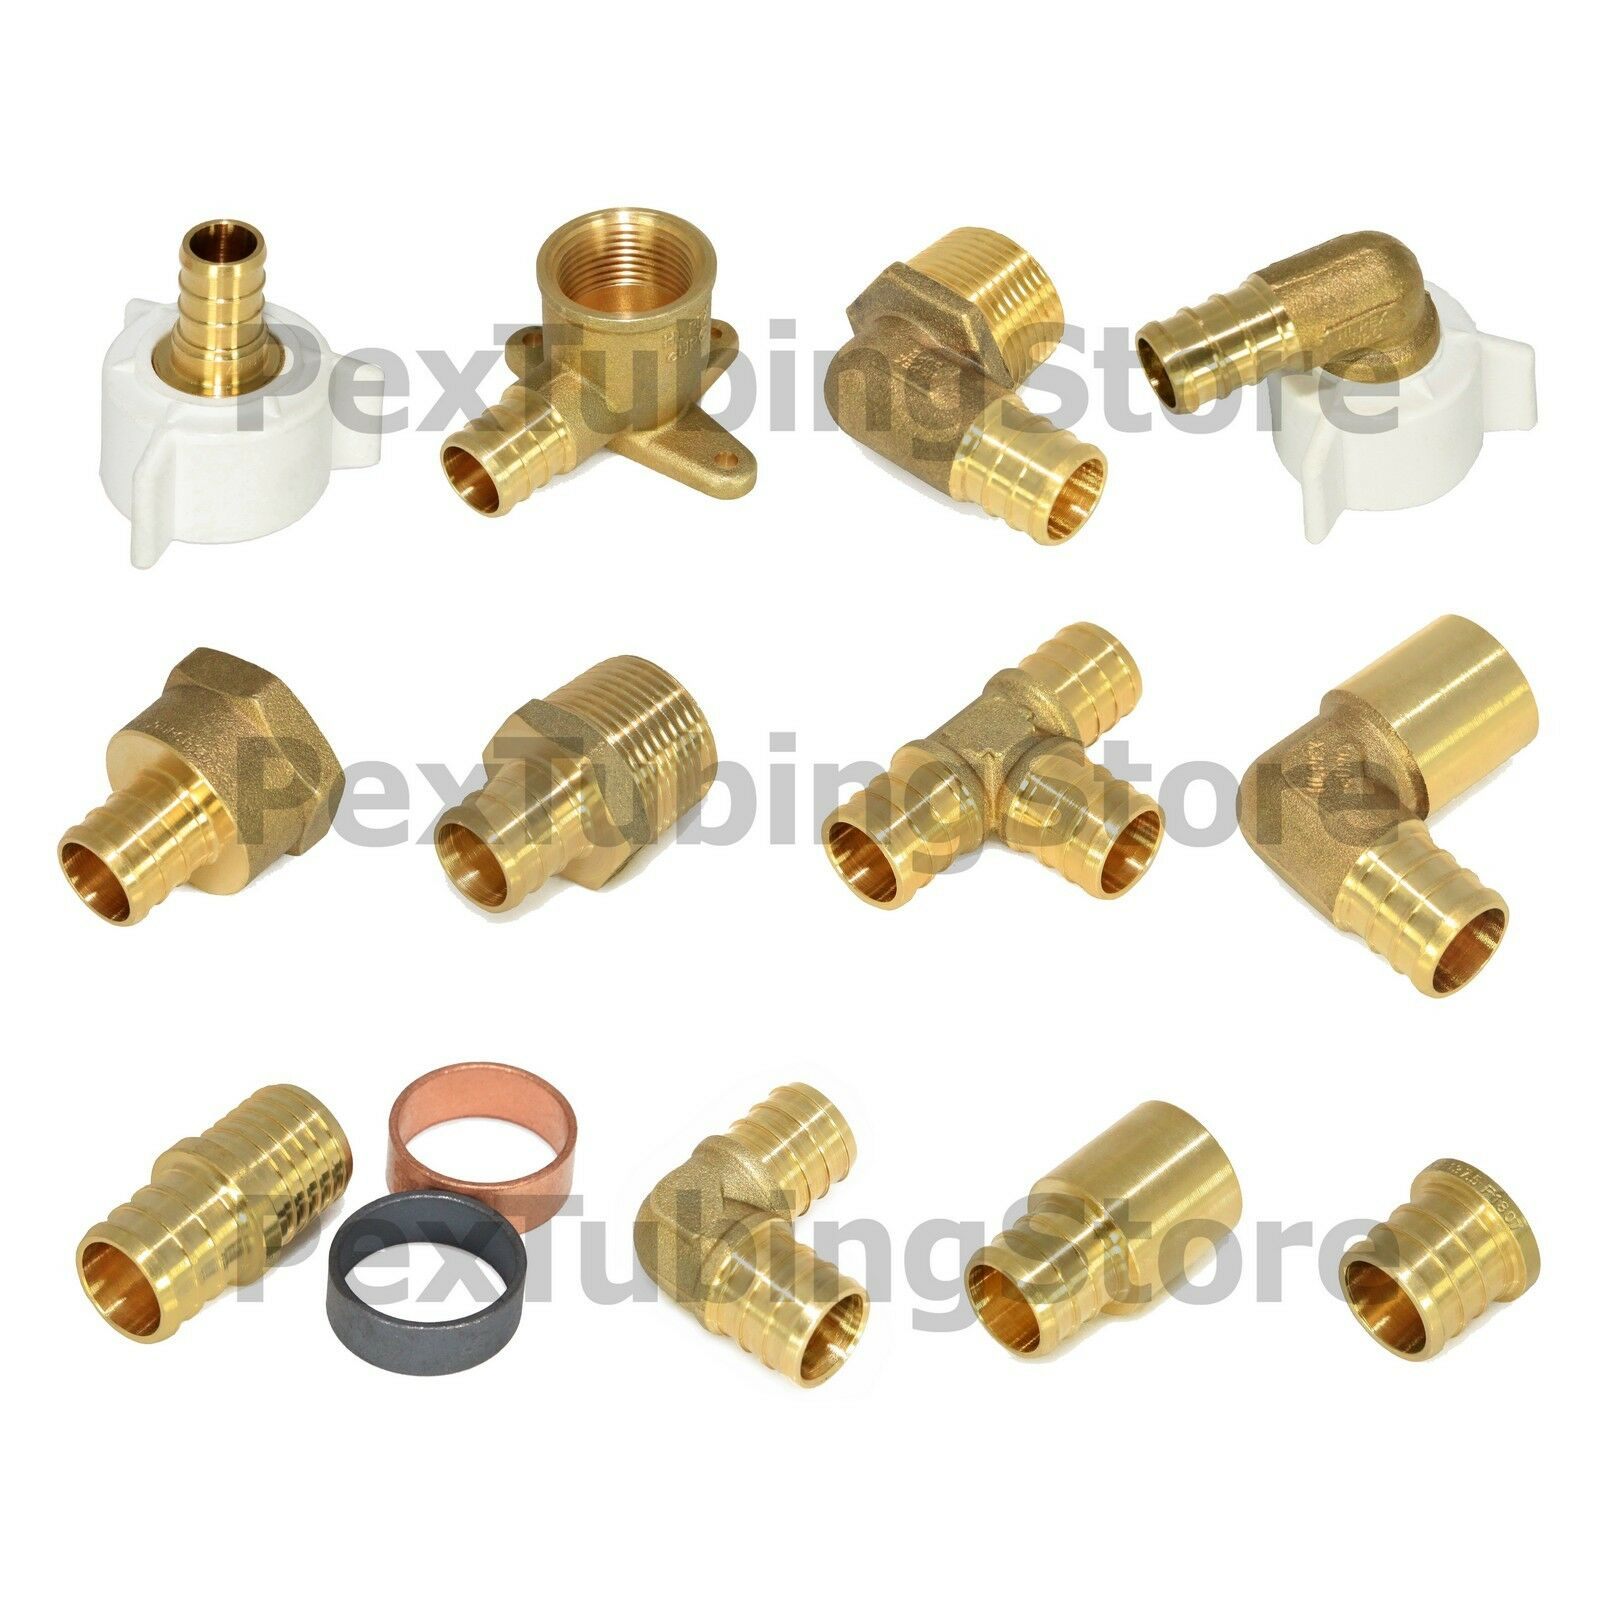 Купить Does Not Apply - PEX Fittings All Sizes - Brass Crimp Elbows Tees Couplings Adapters, ASTM, NSF